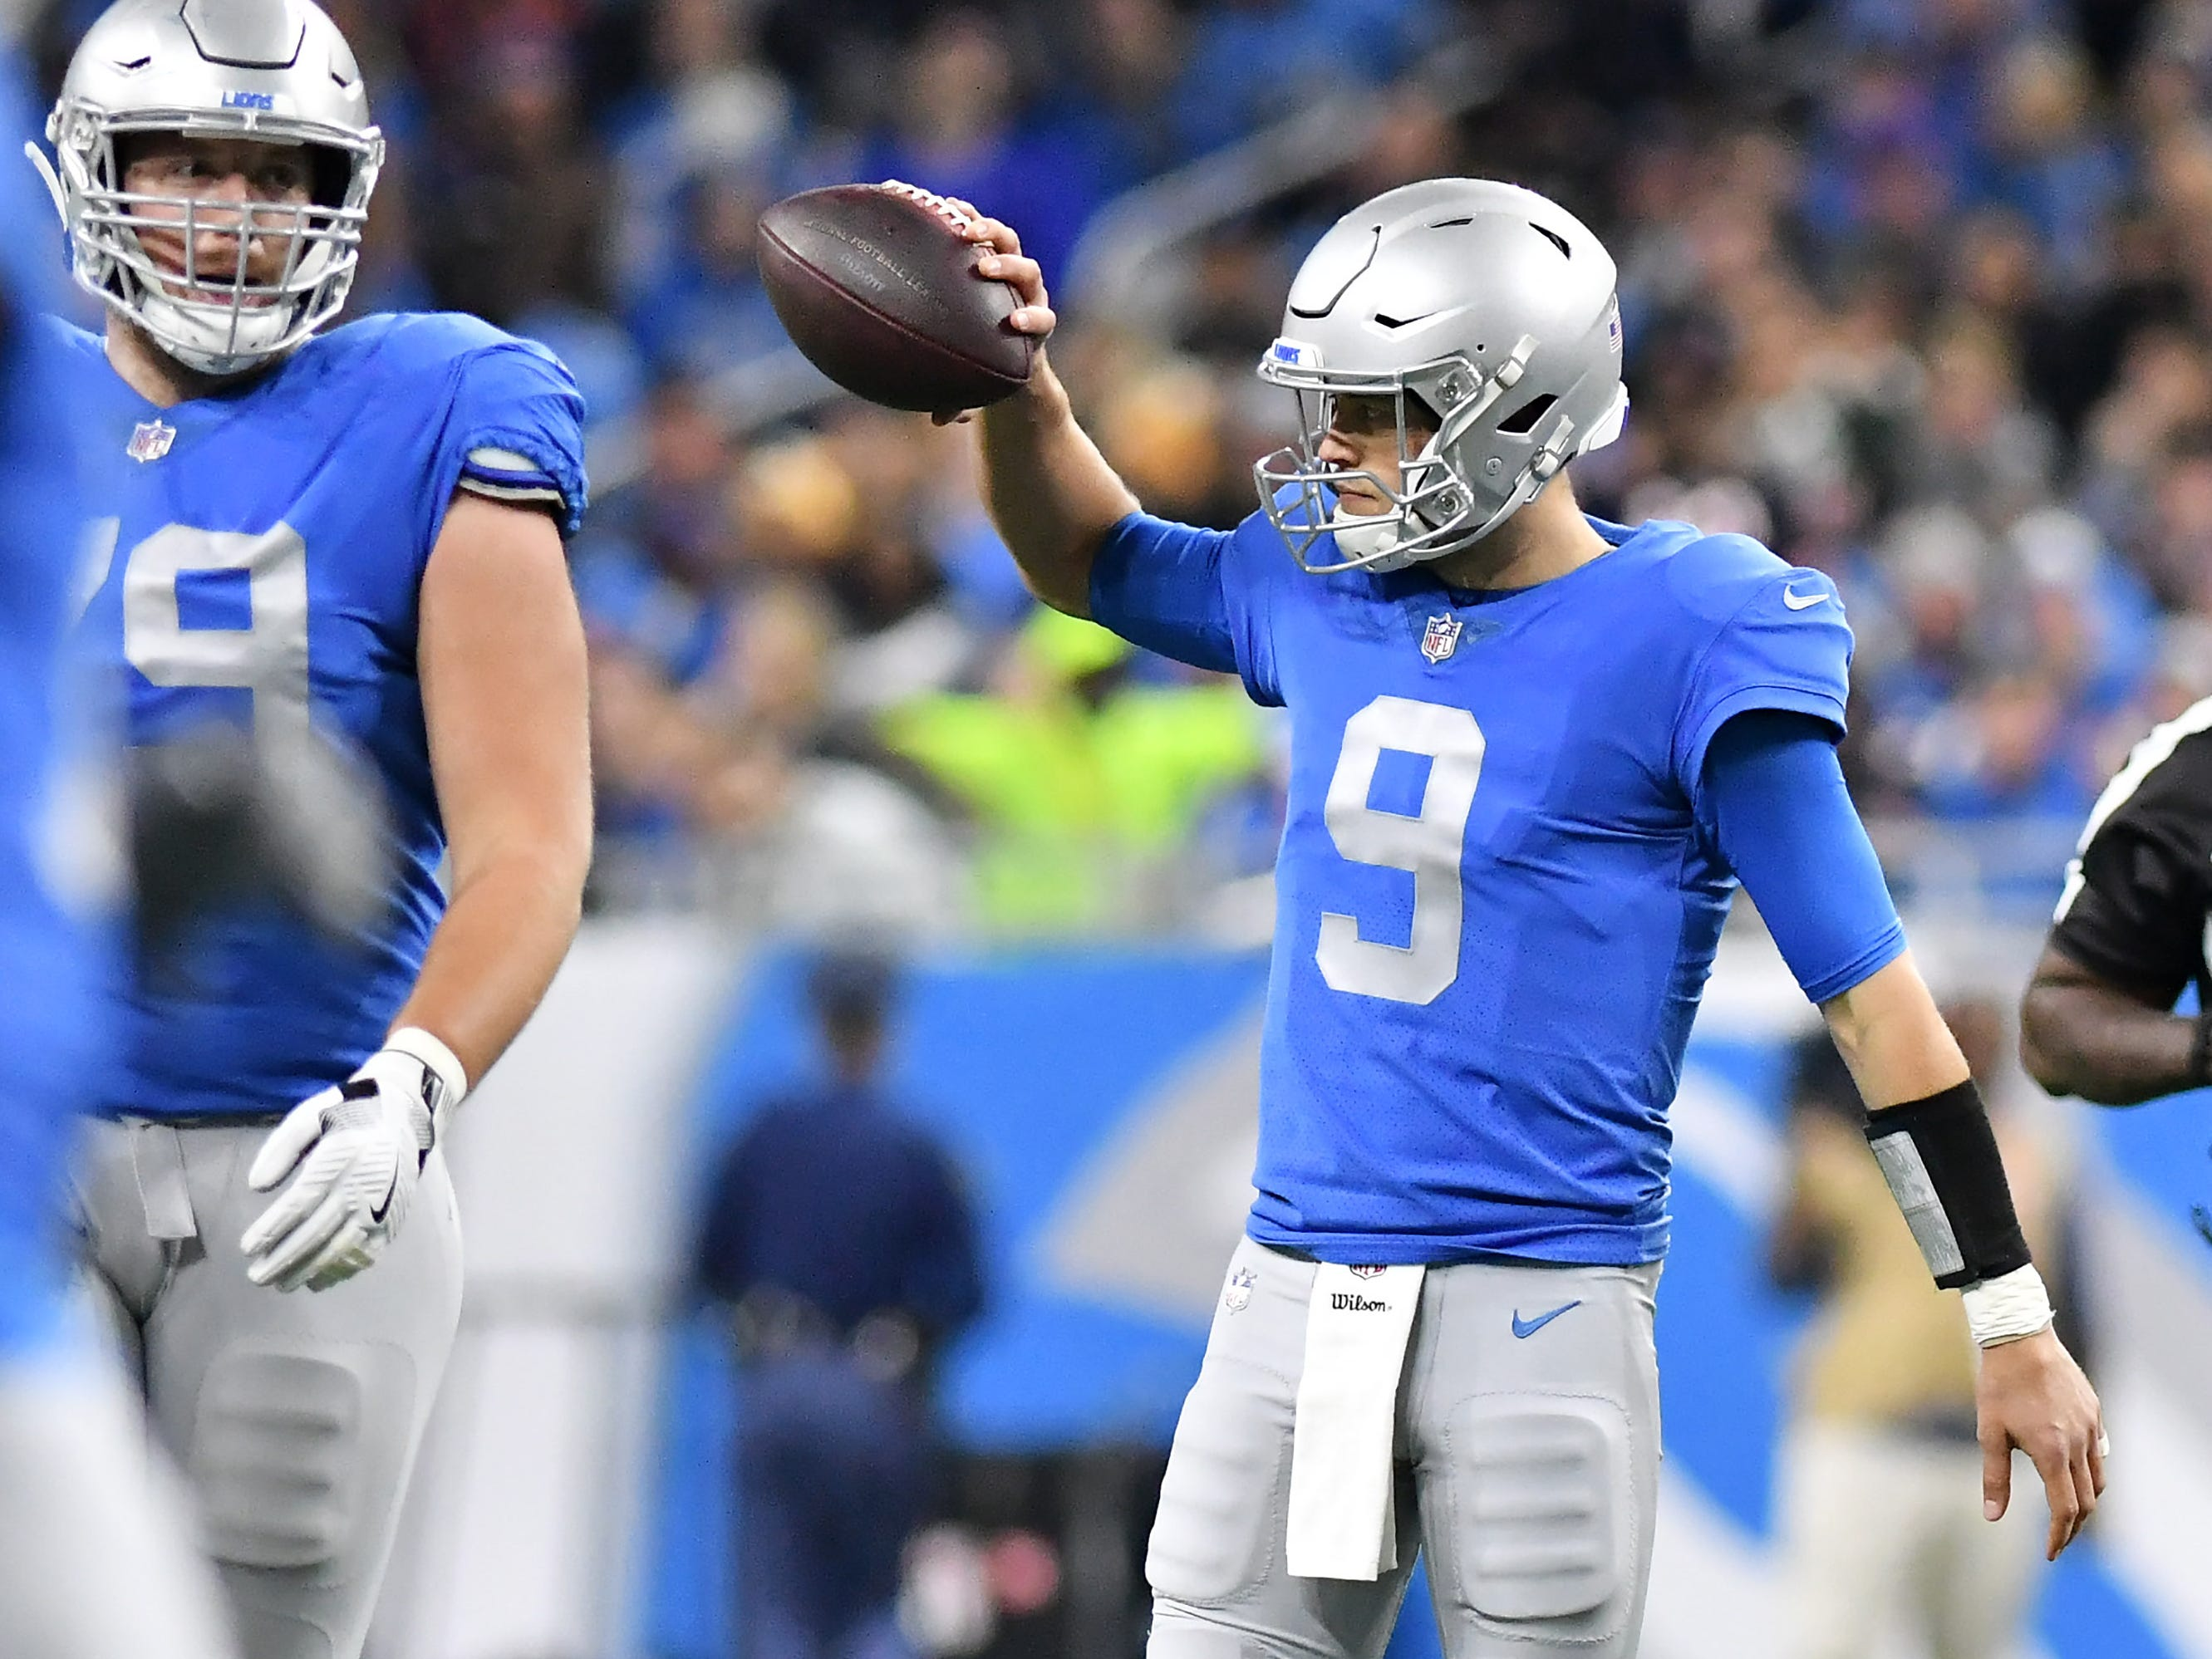 Lions quarterback Matthew Stafford reacts after a delay of game penalty In the second quarter. Detroit Lions vs Chicago Bears on Thanksgiving Day at Ford Field in Detroit on Nov. 22, 2018. 